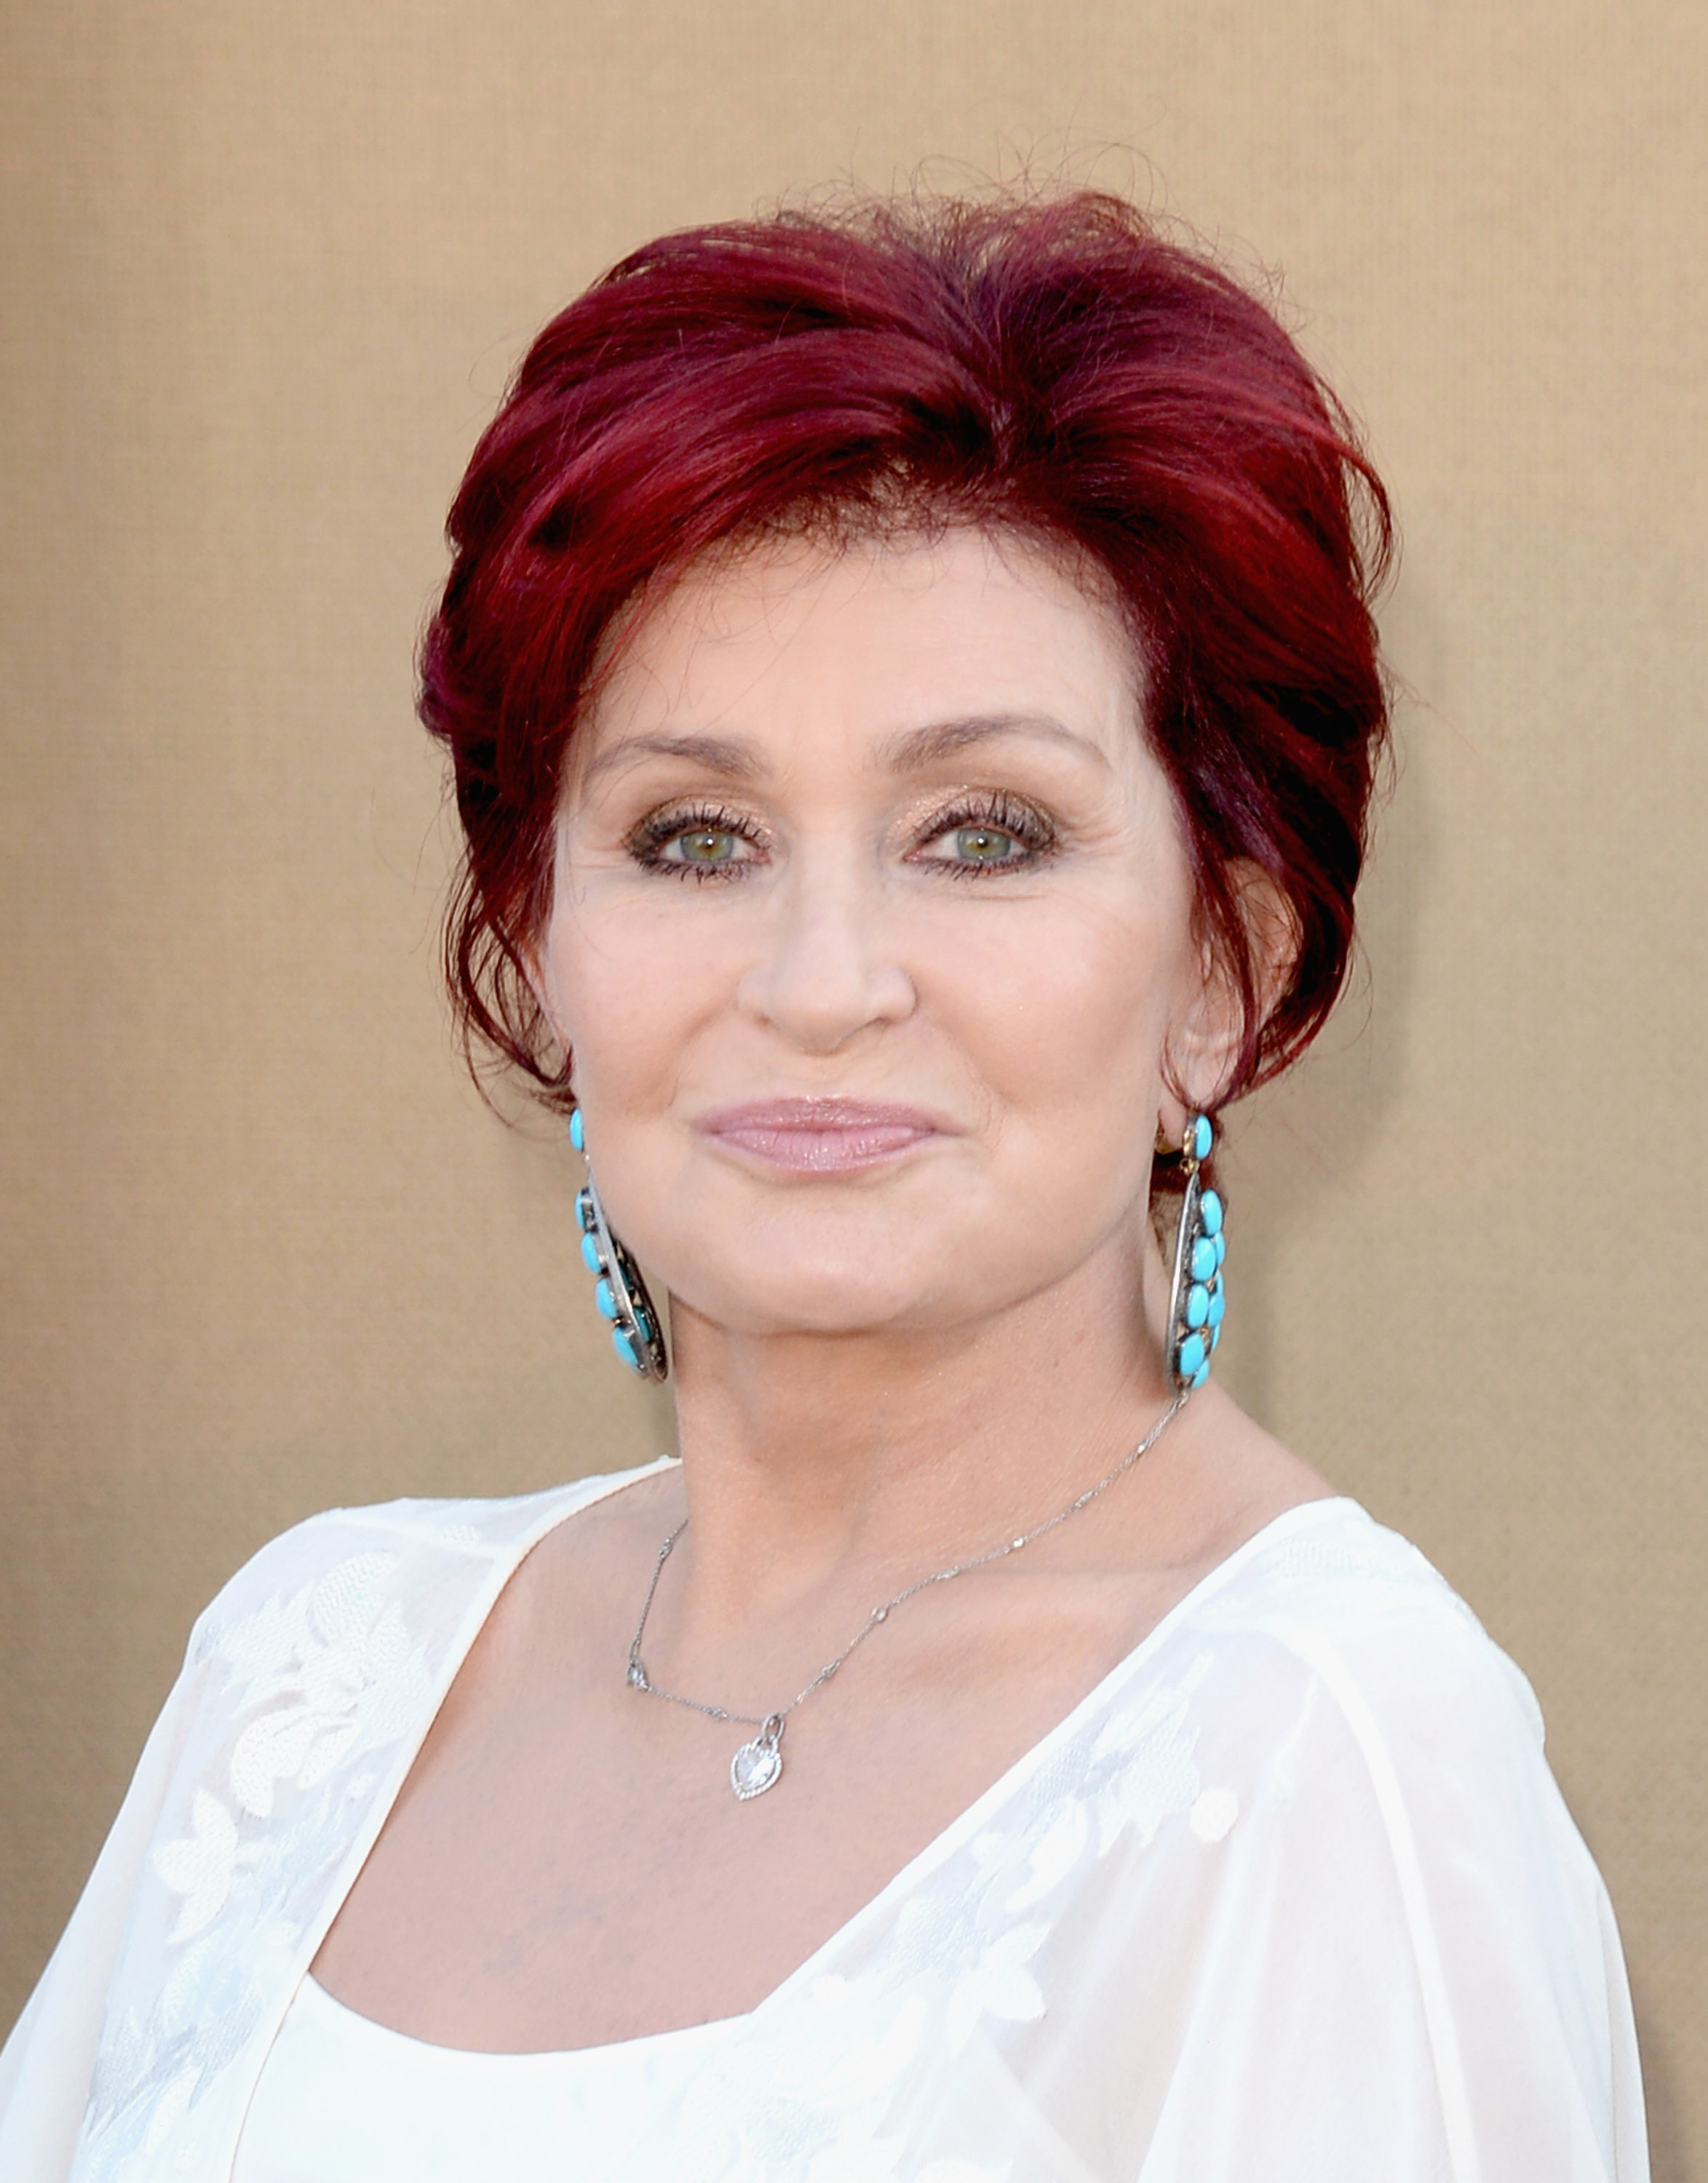 Sharon Osbourne Shares Nude Photo in Support of Kim